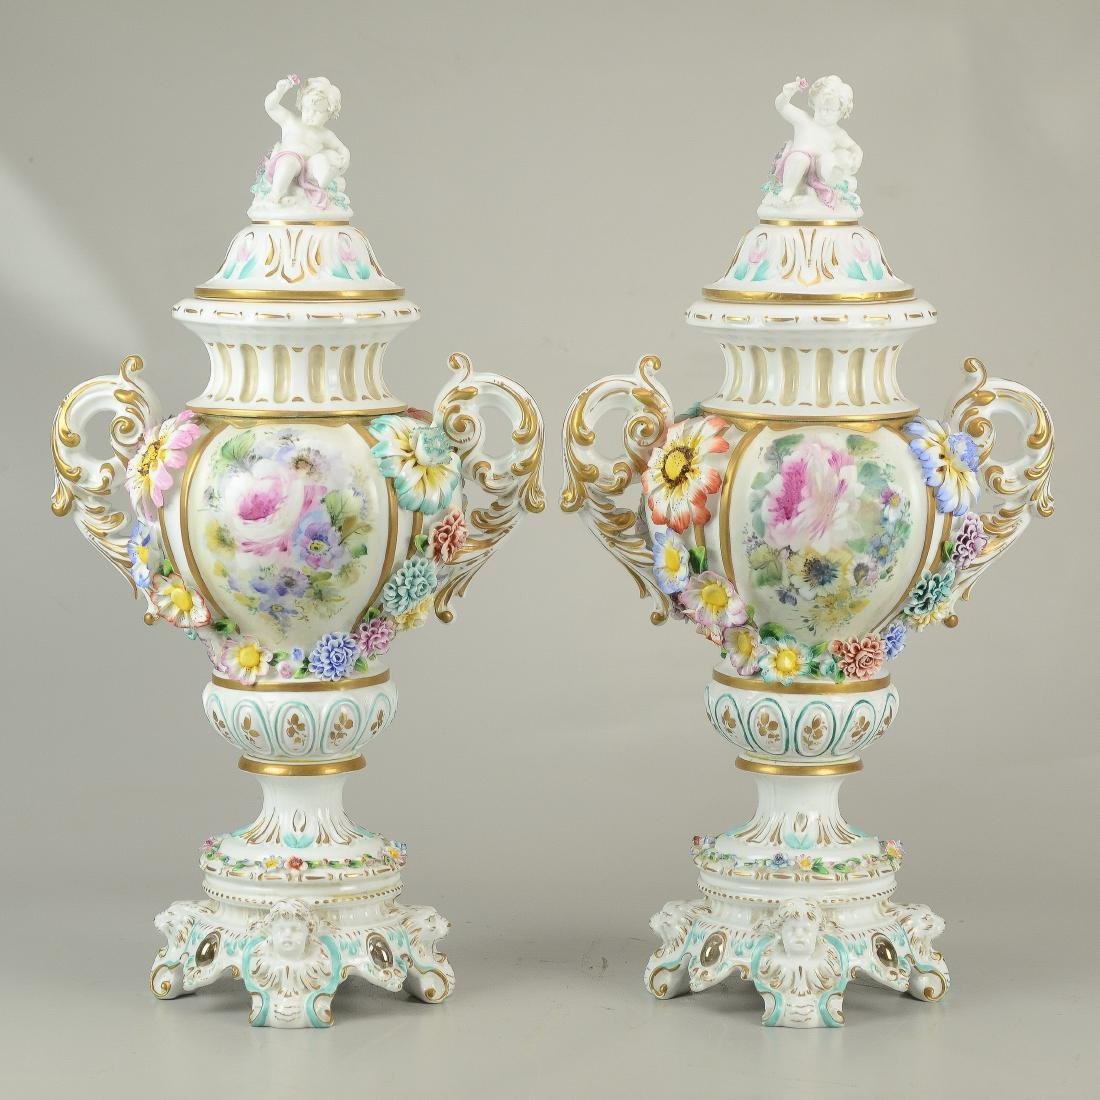 """Pr Tiche porcelain covered urns, made in Italy, 22-1/2"""""""